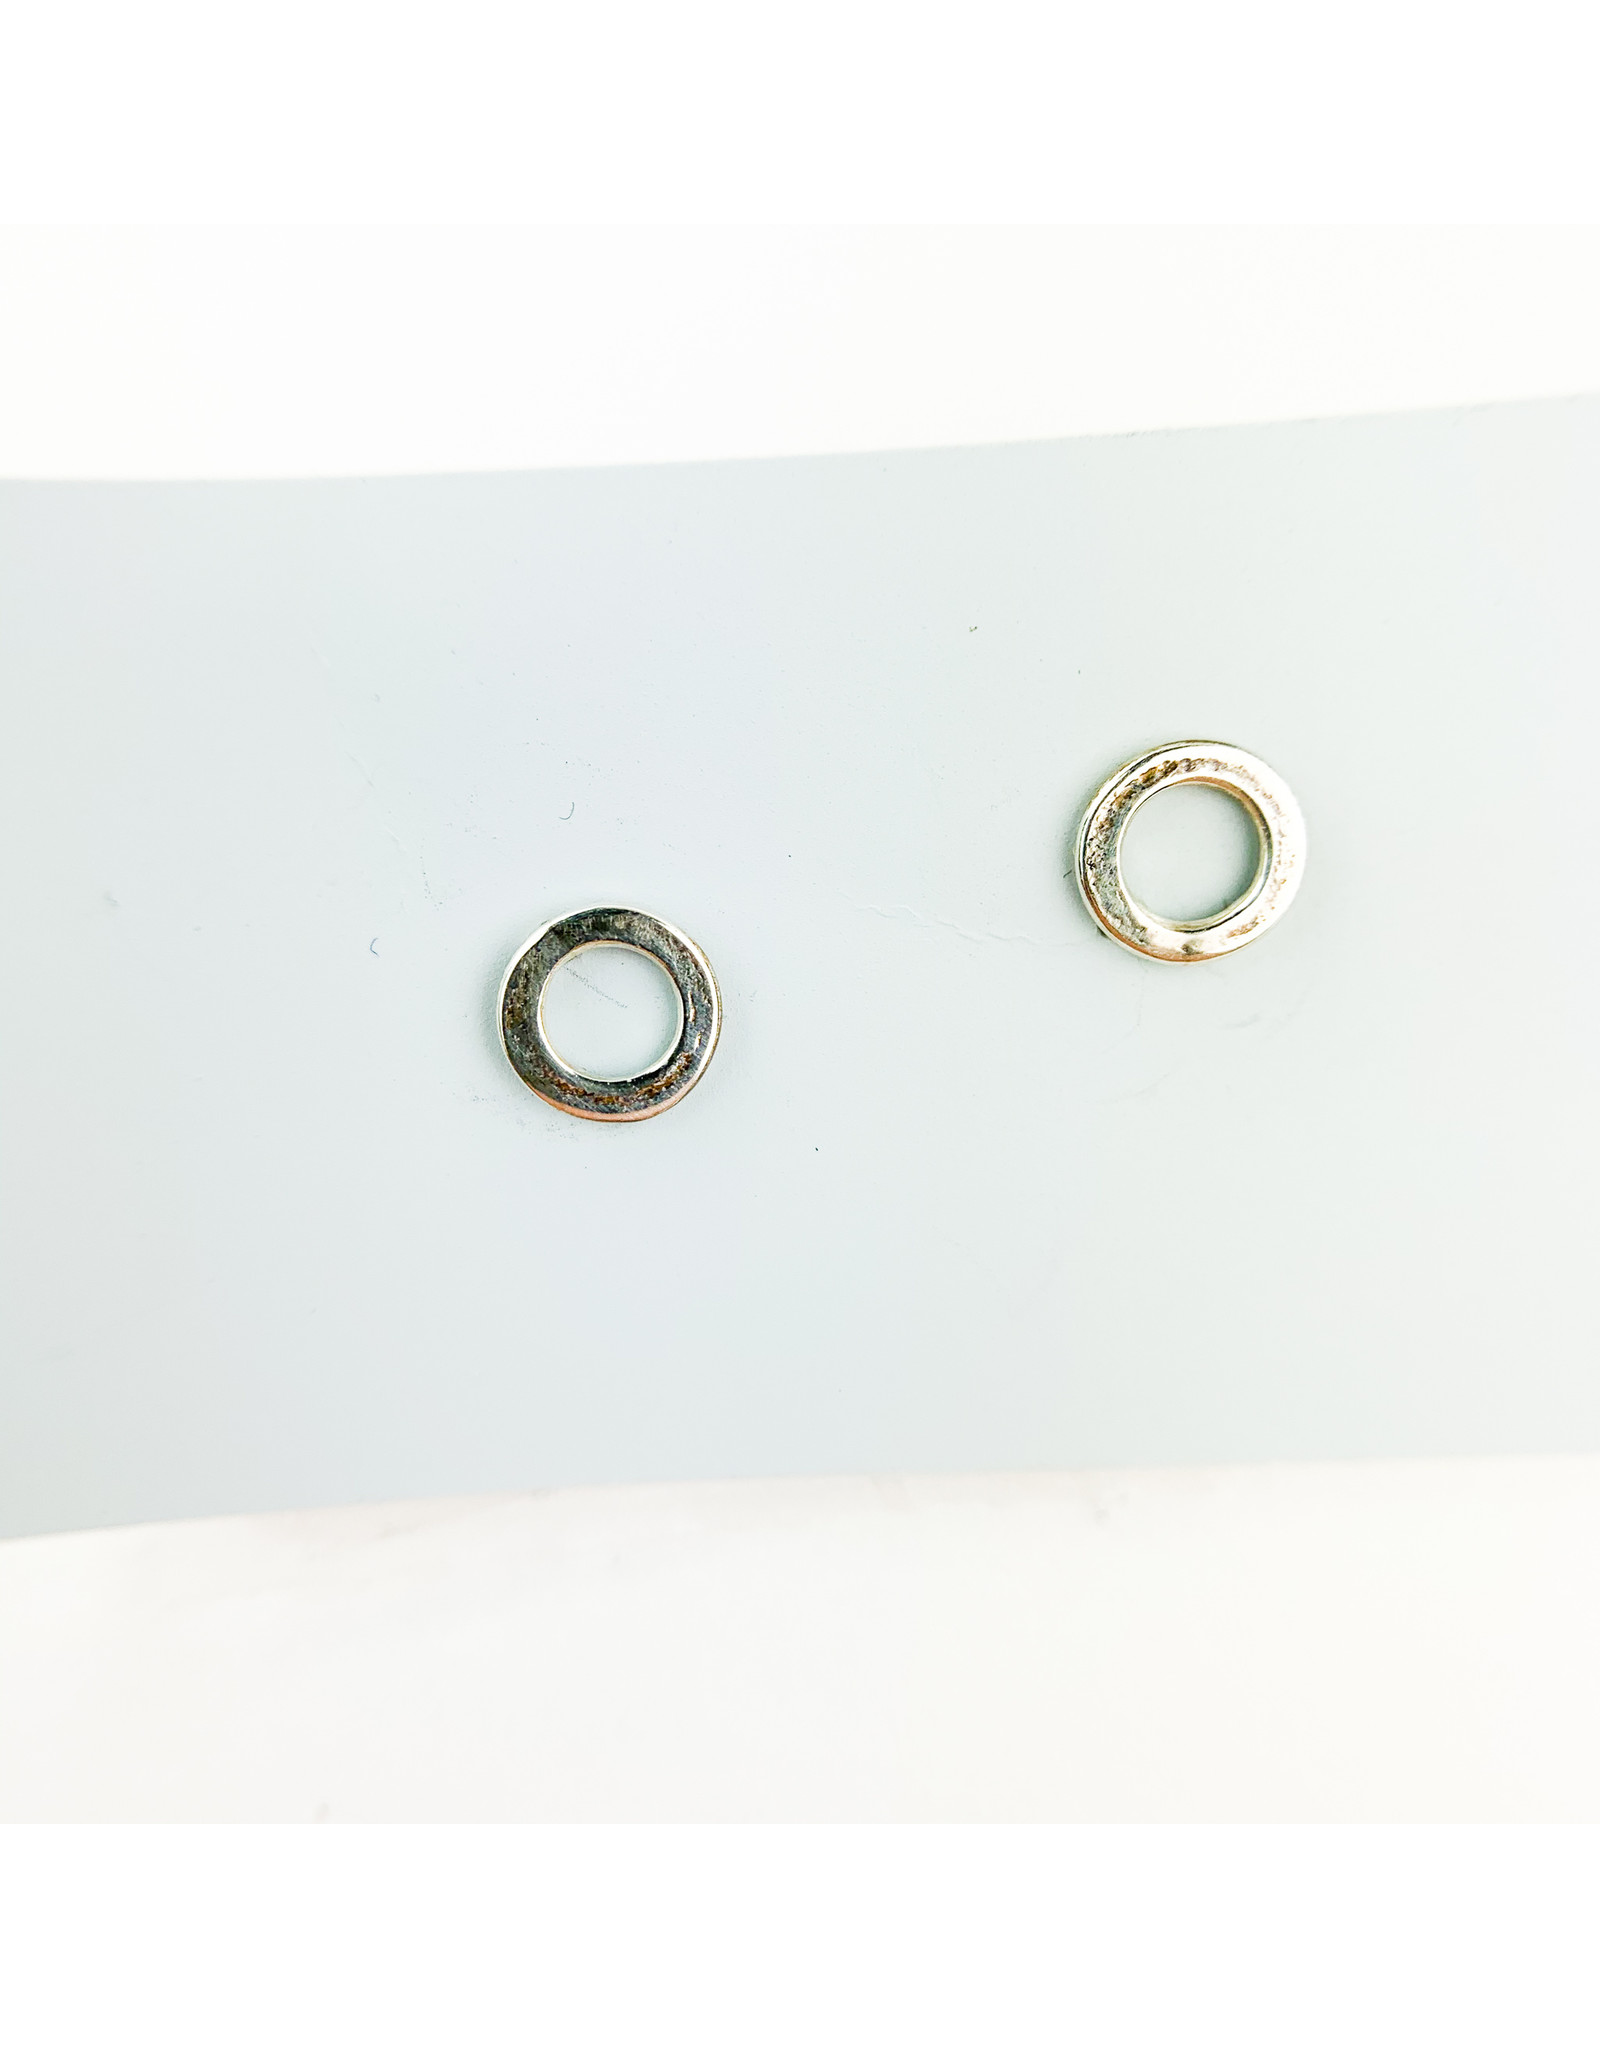 Camille Hempel Jewelry-Consignment Circle stud earrings-sm.-consignment-che03